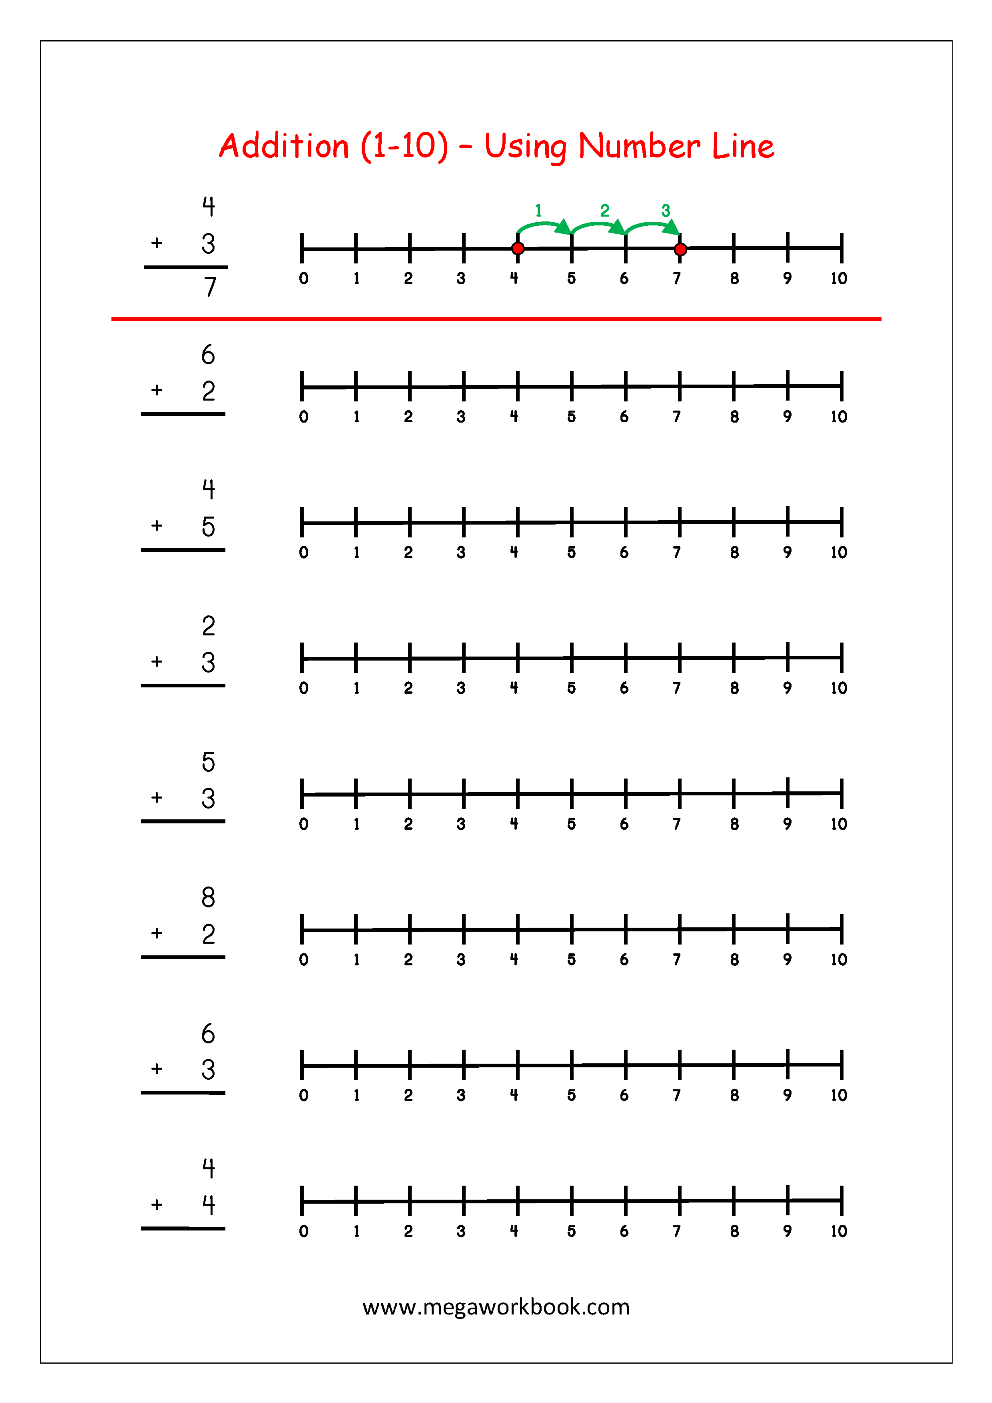 Worksheets - Addition Using Number Line (http://www.megaworkbook.com ...